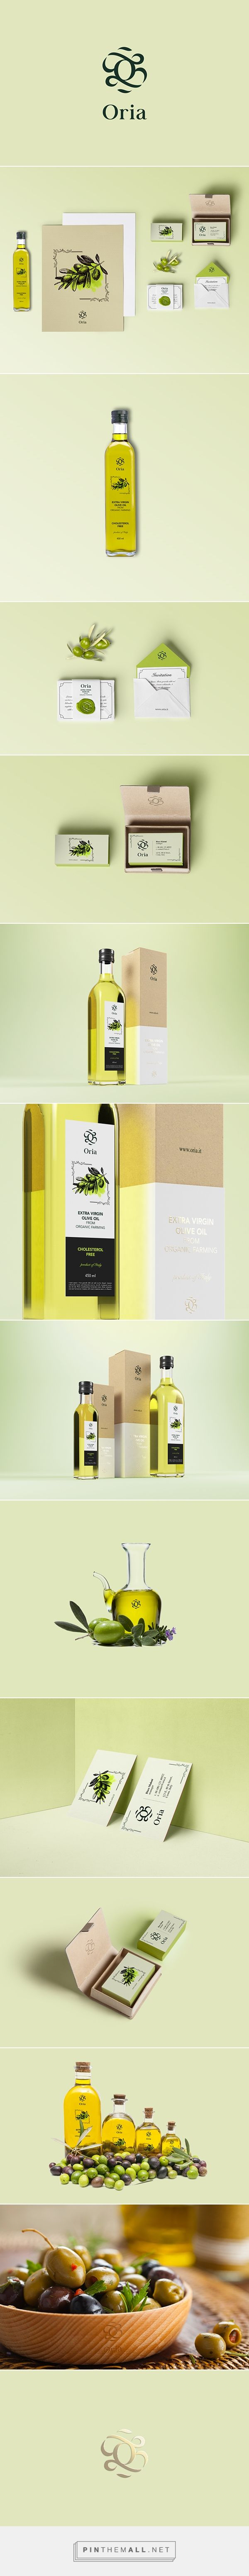 Oria - olive oil producer on Behance... - a grouped images picture - Pin Them All